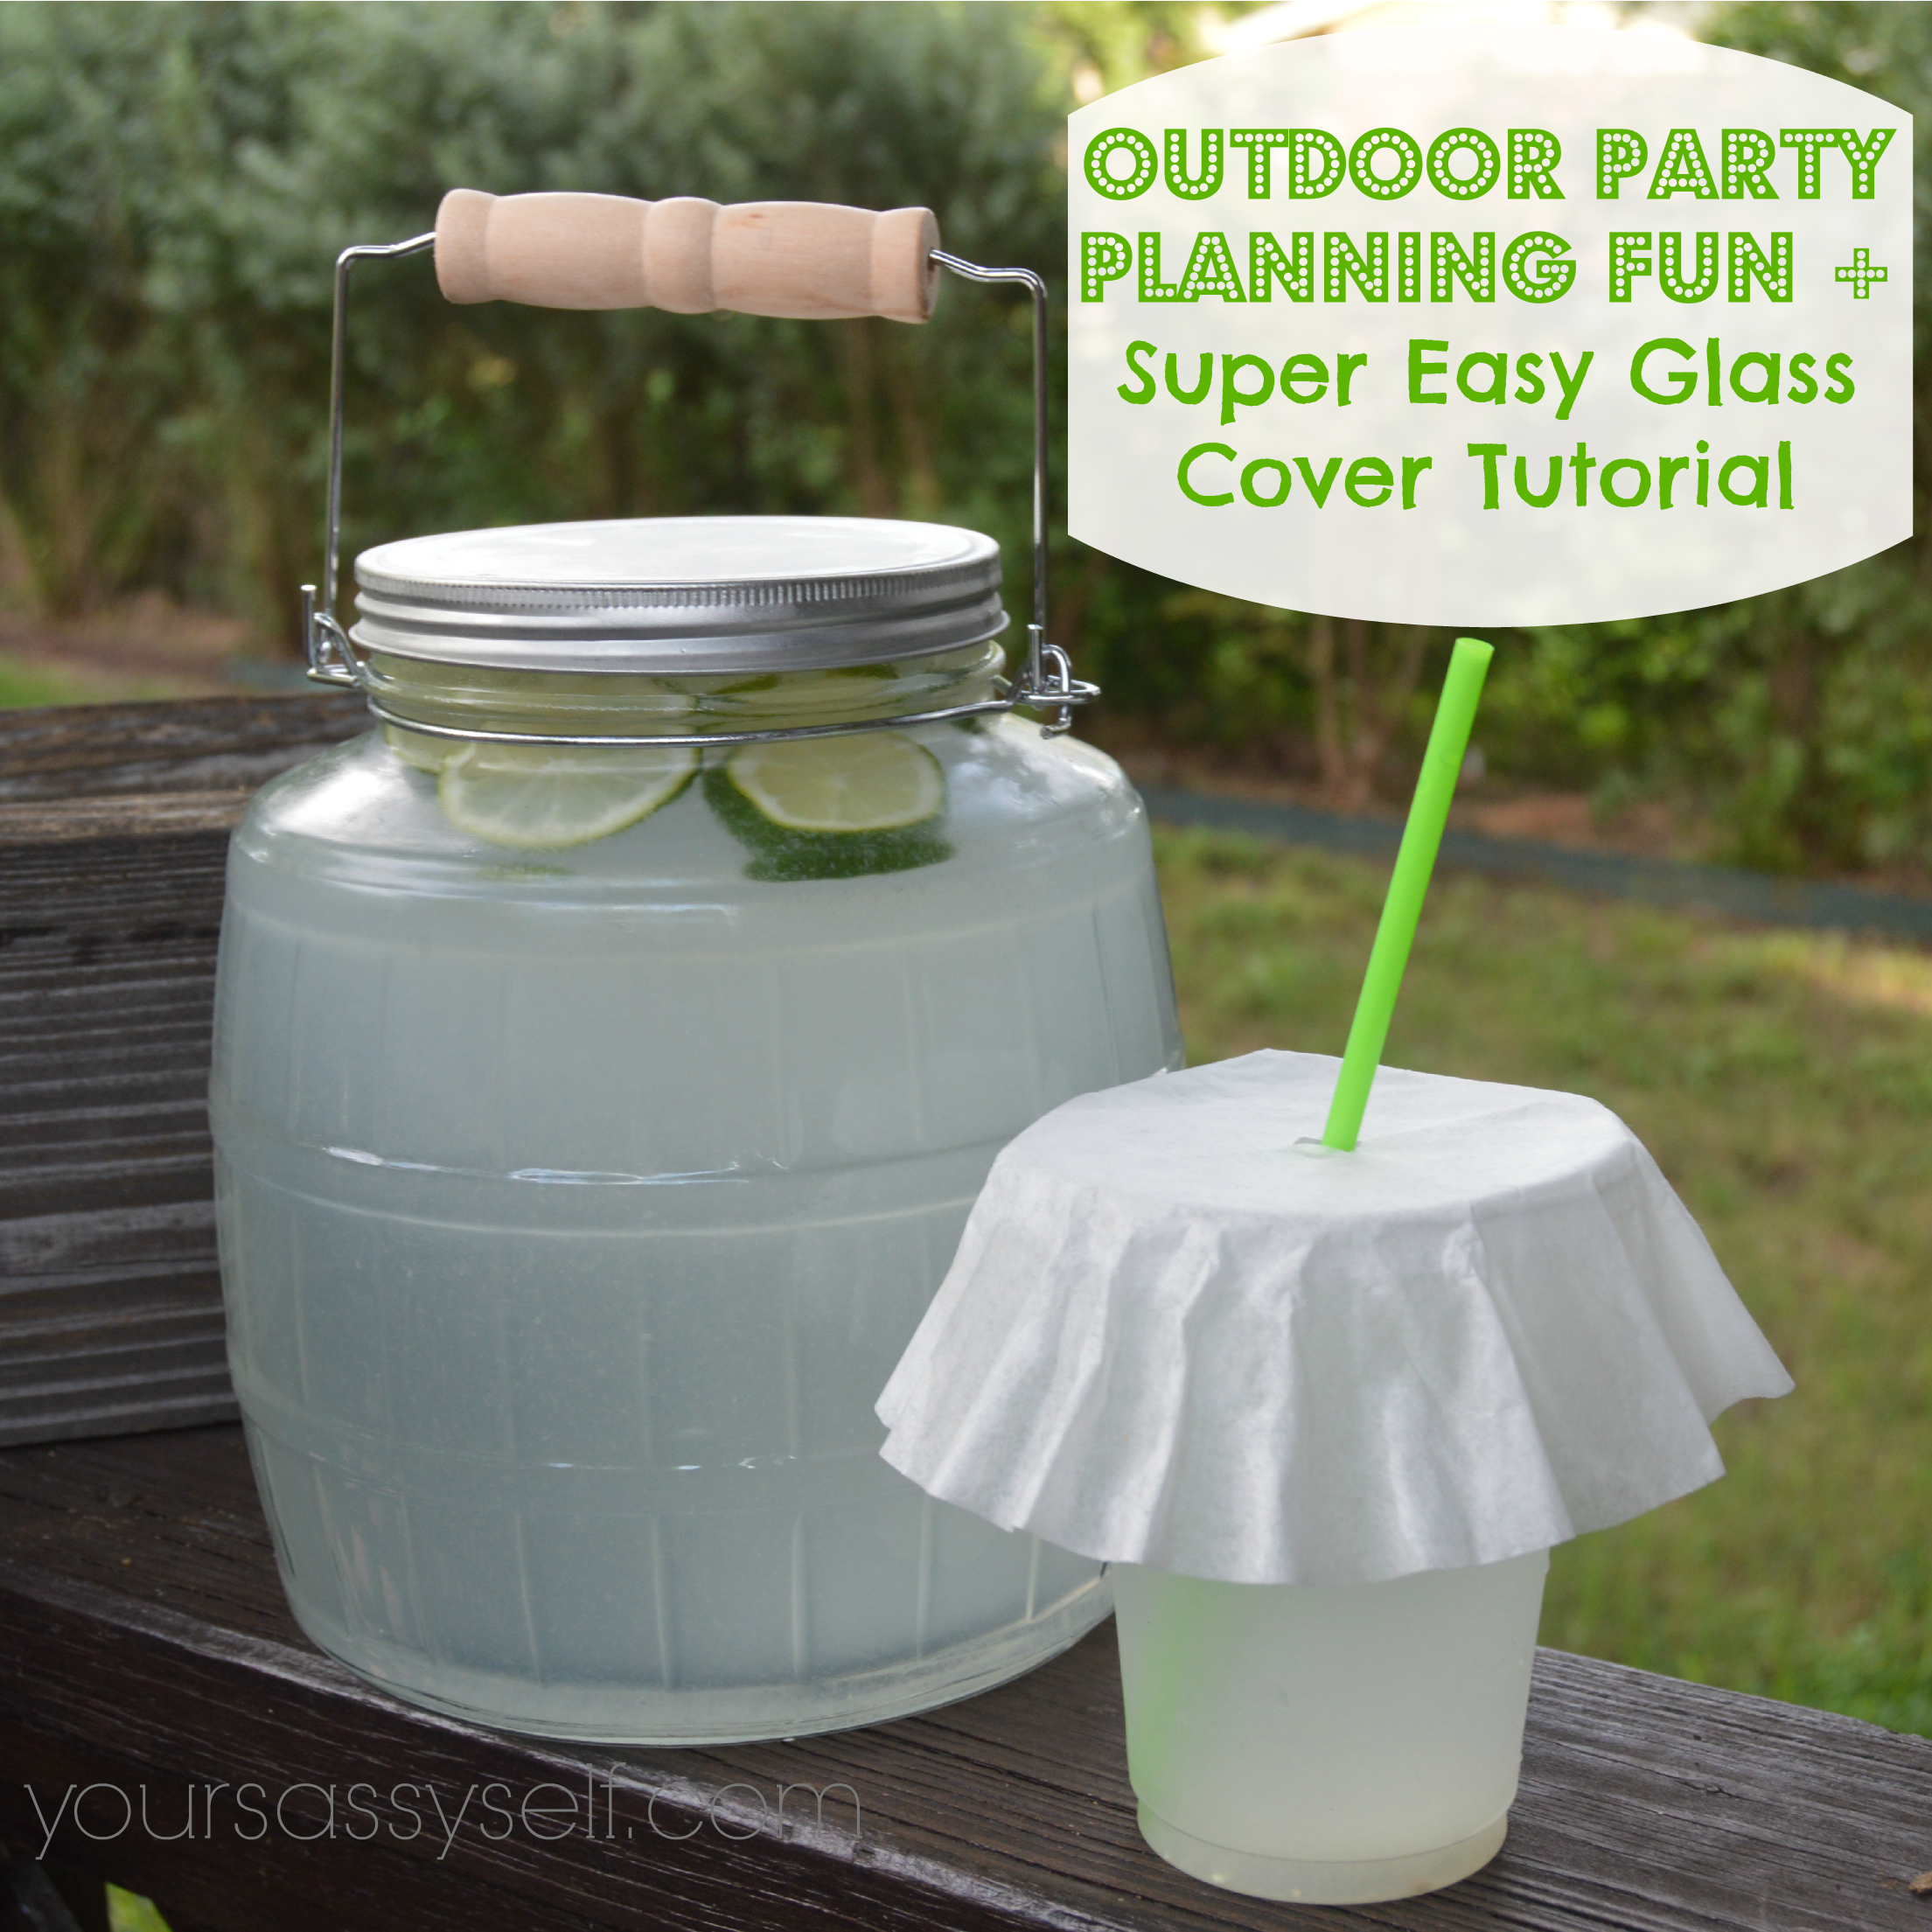 Outdoor Party Planning Fun + Super Easy Glass Cover Tutorial